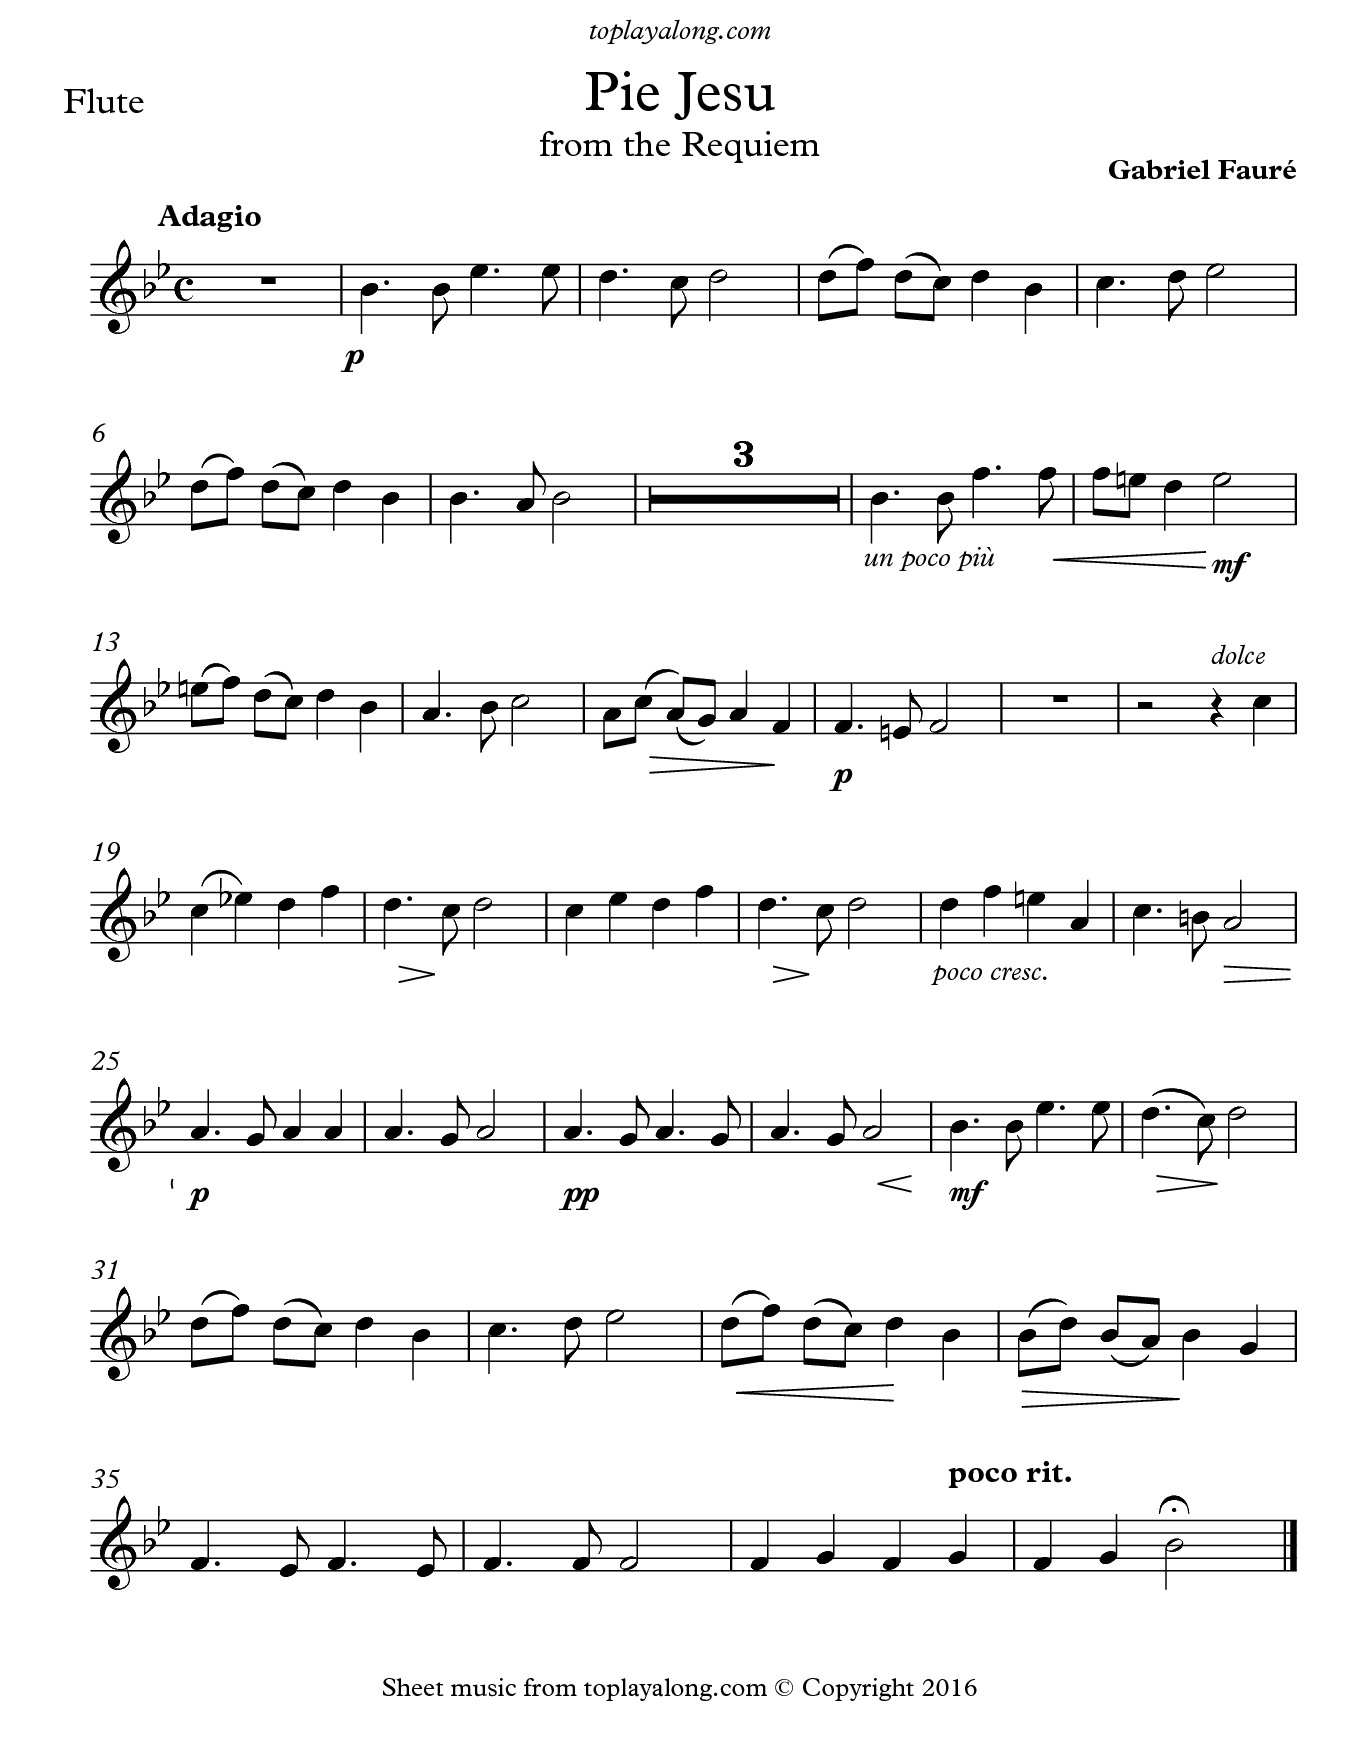 Pie Jesu From The Requiem By Faure Free Sheet Music For Flute Visit Toplayalong Com And Get Access To Hundreds Partituras Partituras Violin Partitura Flauta